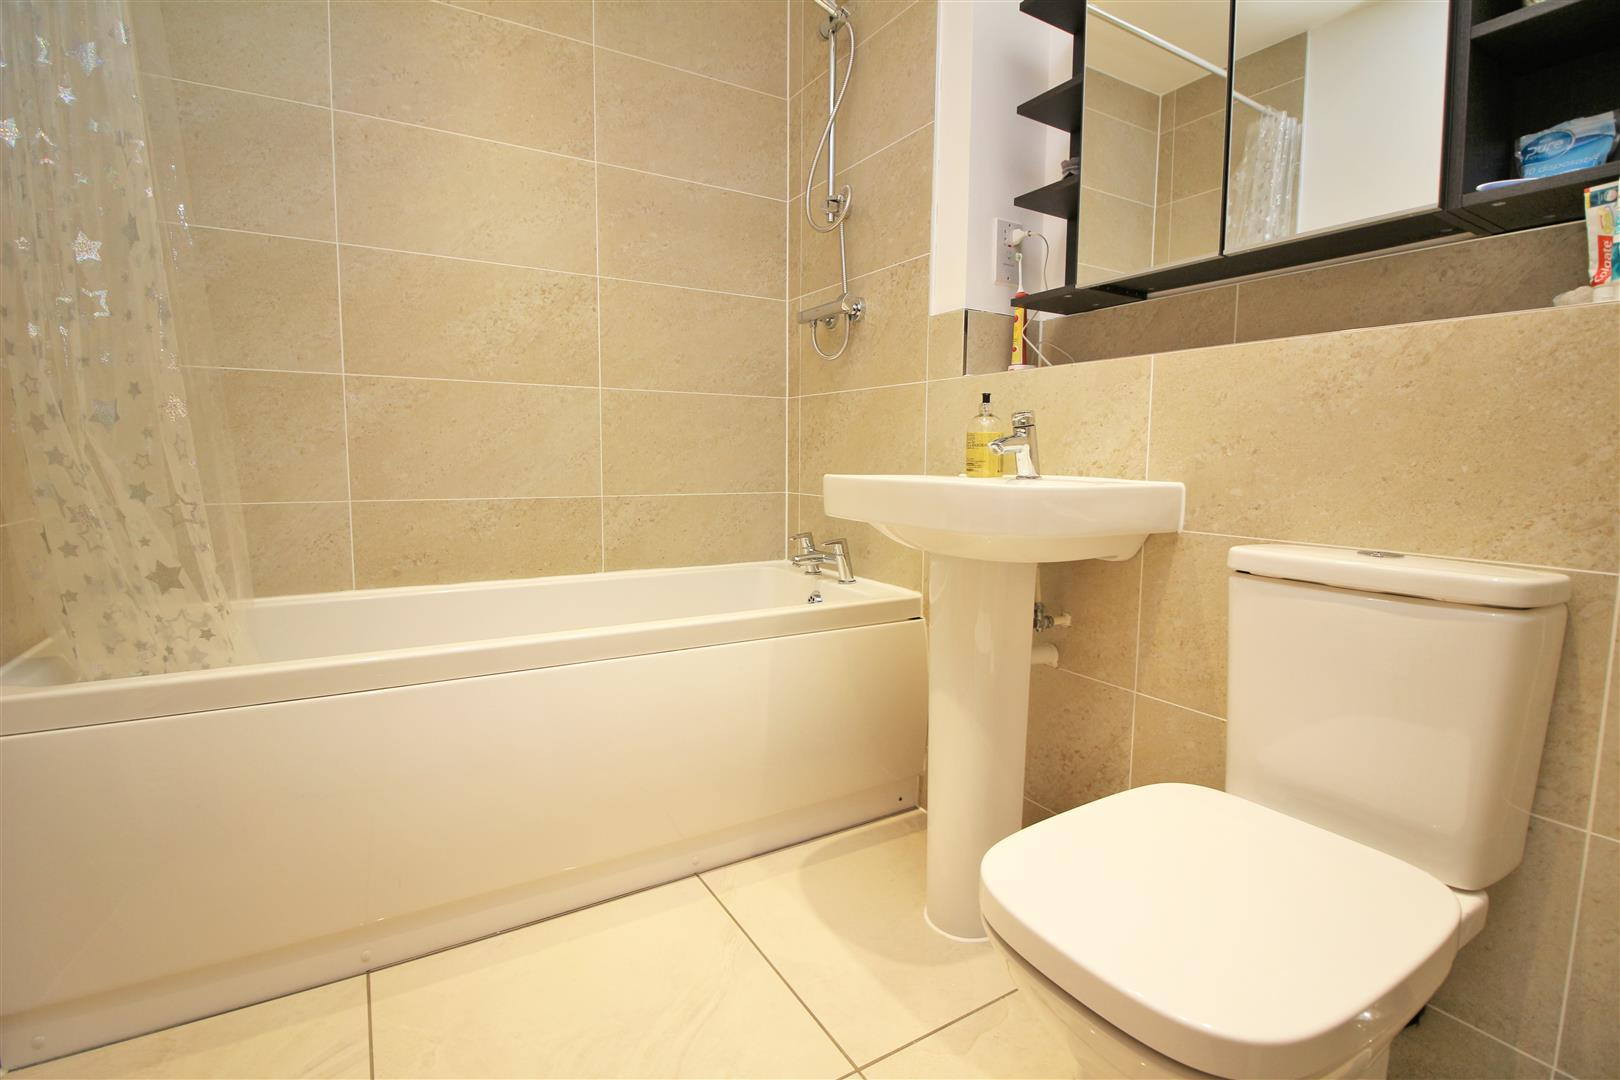 4 bed to rent in Leavesden - (Property Image 19)